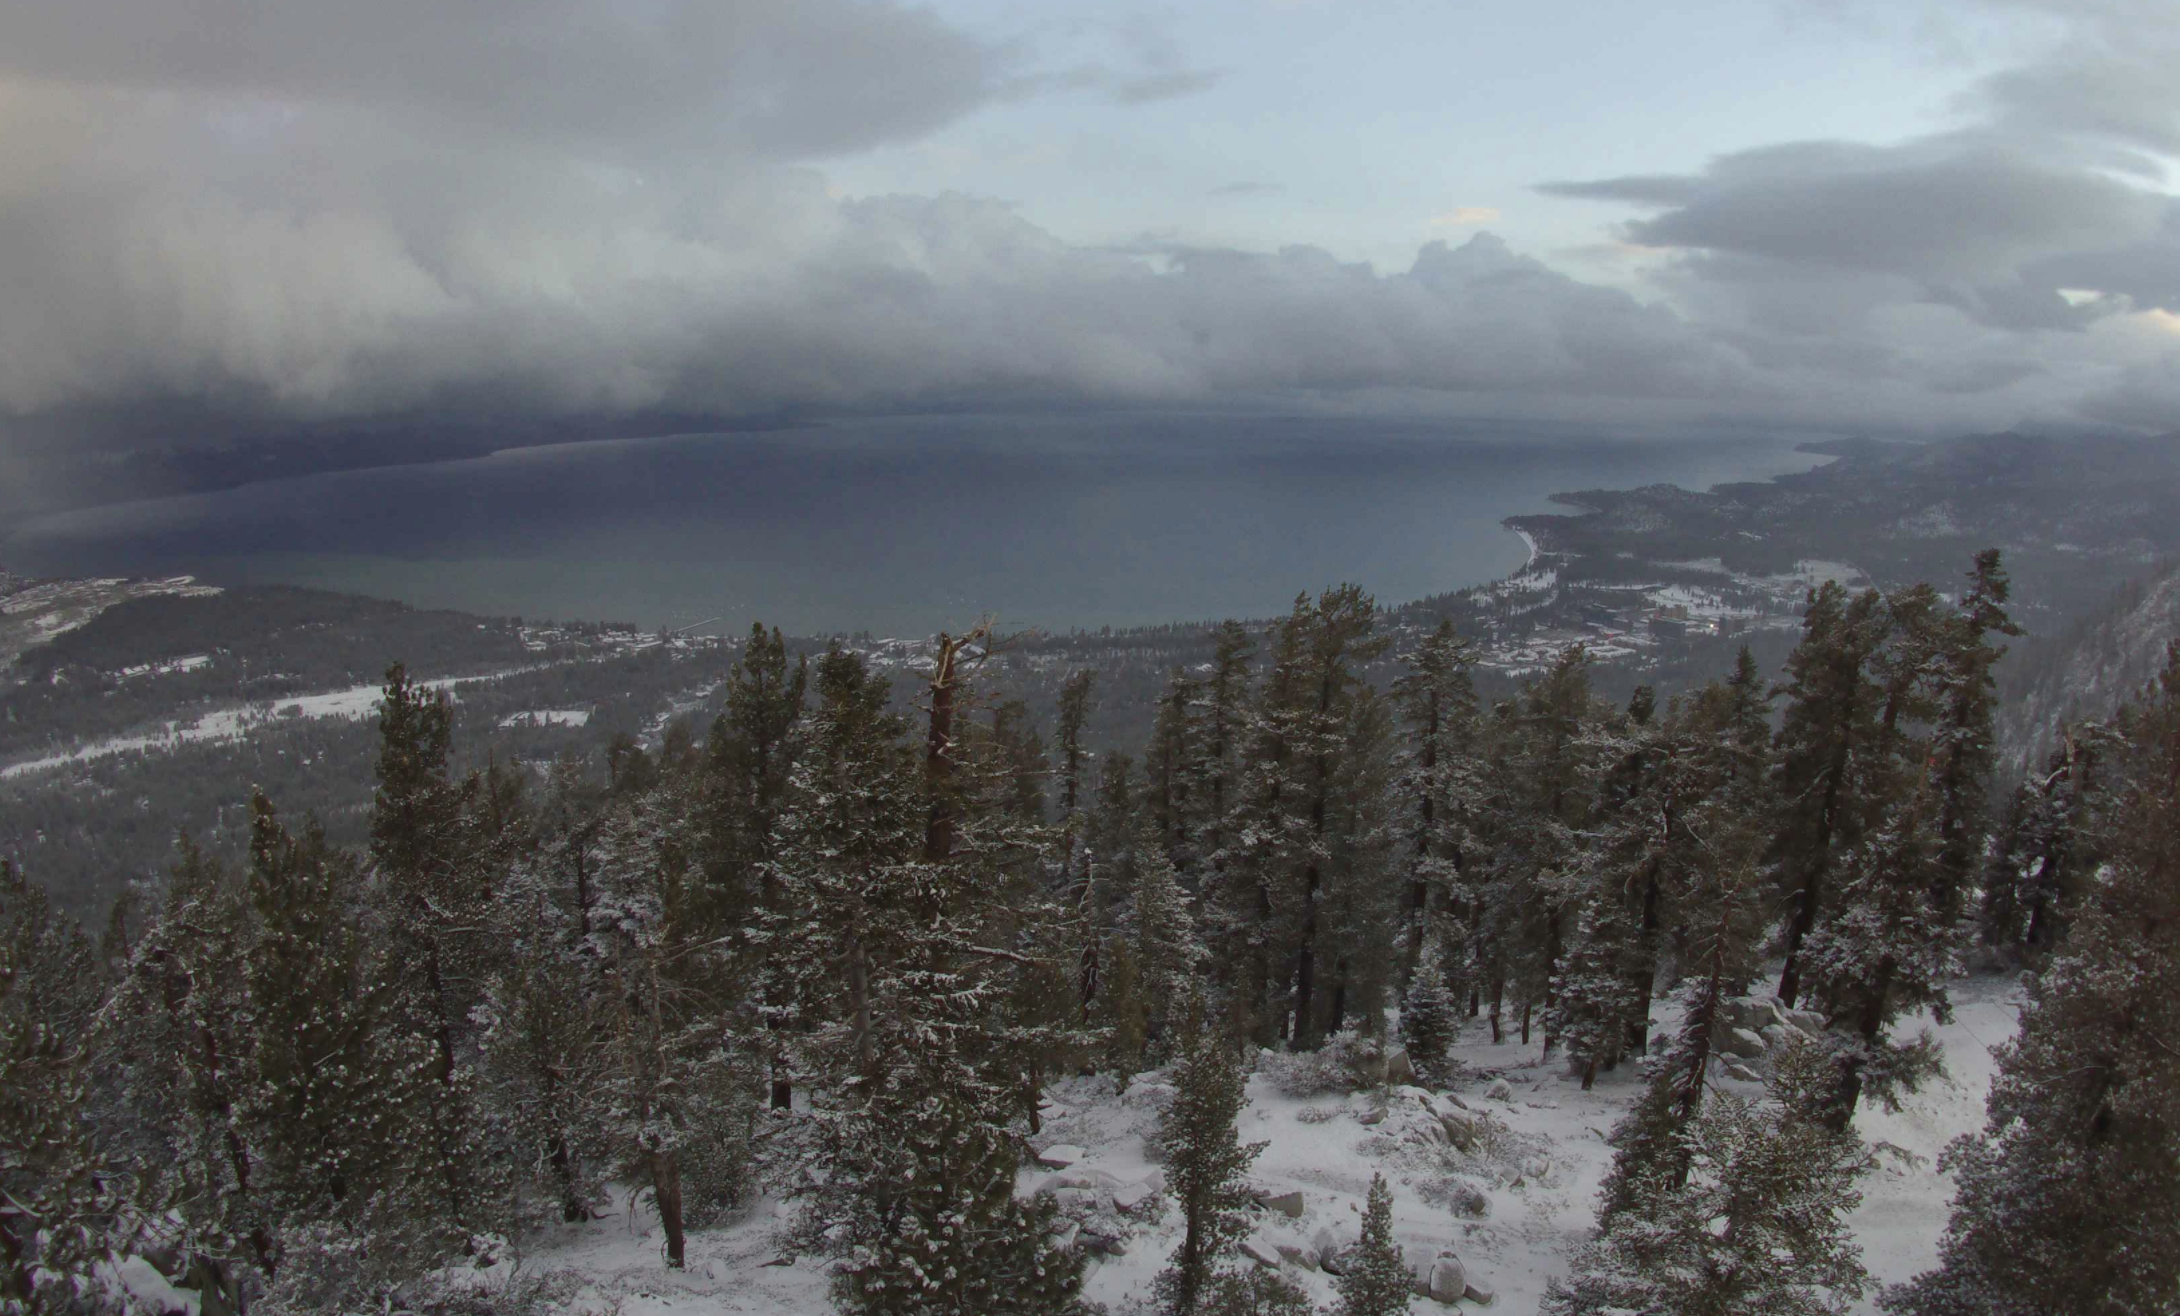 High elevations of the Sierra Nevada are sporting new dustings of snow on May 21, 2021. (U.S. Forest Service/ National Weather Service)